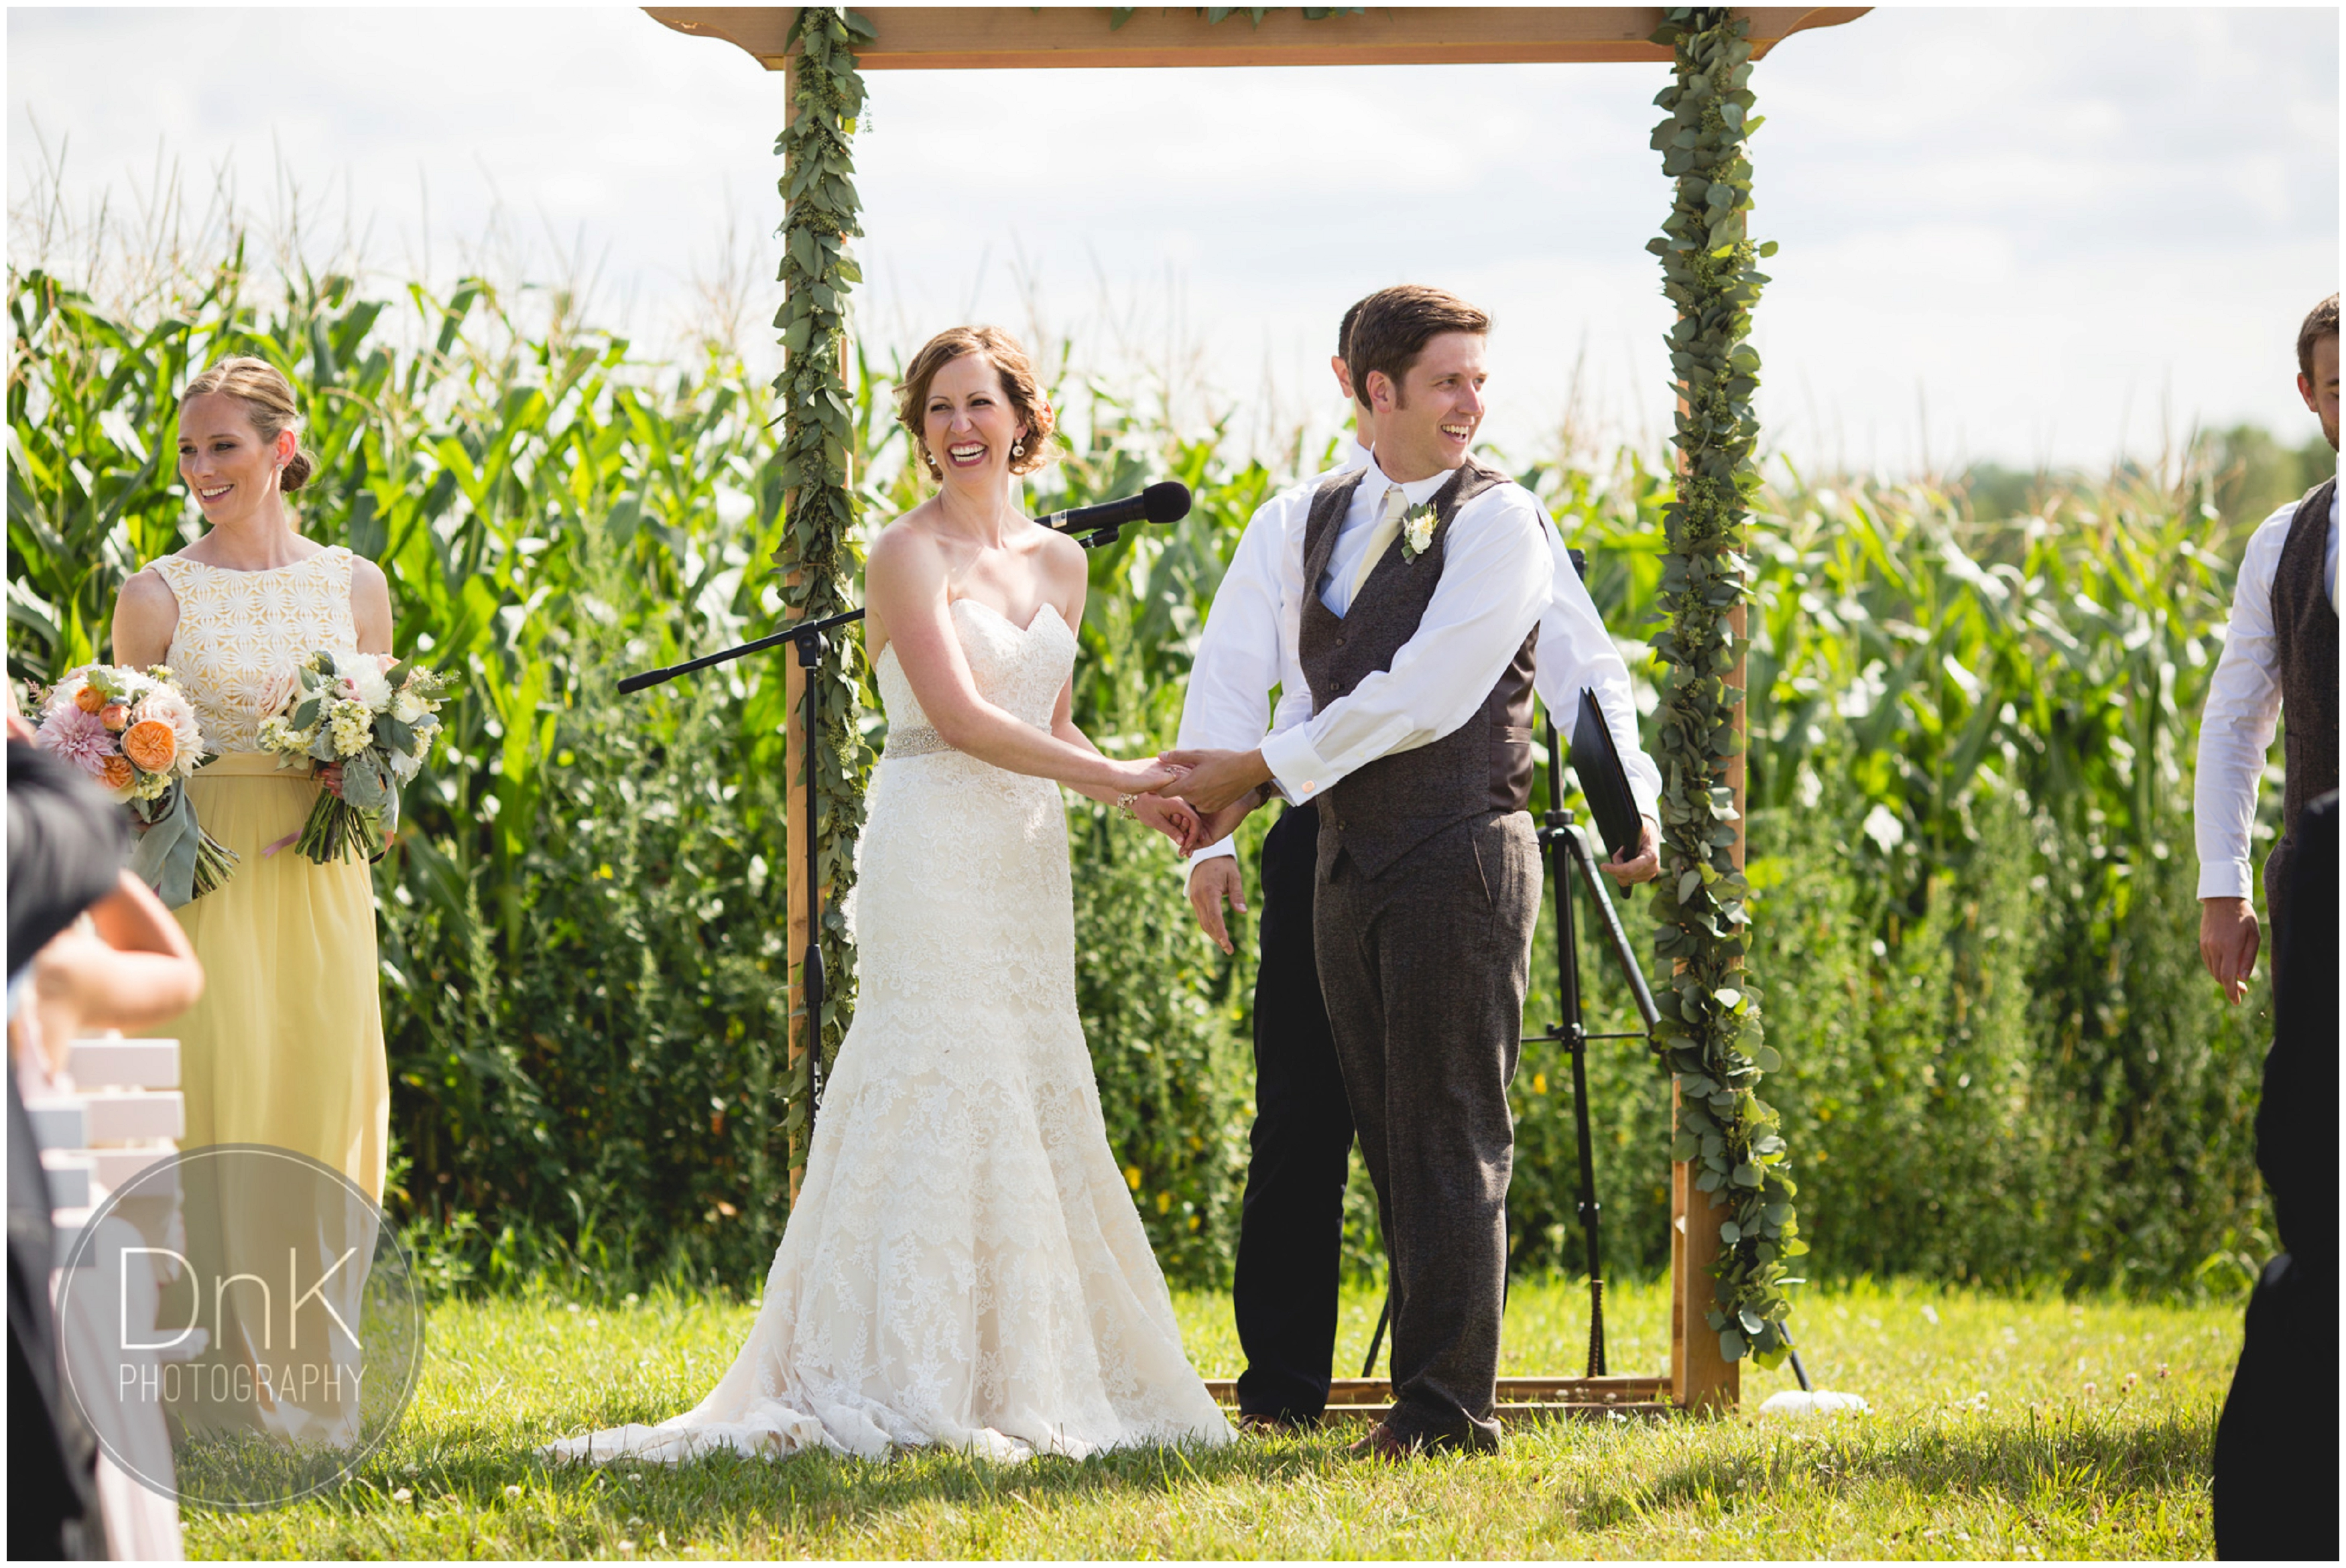 28 - Dellwood Barn Wedding Ceremony